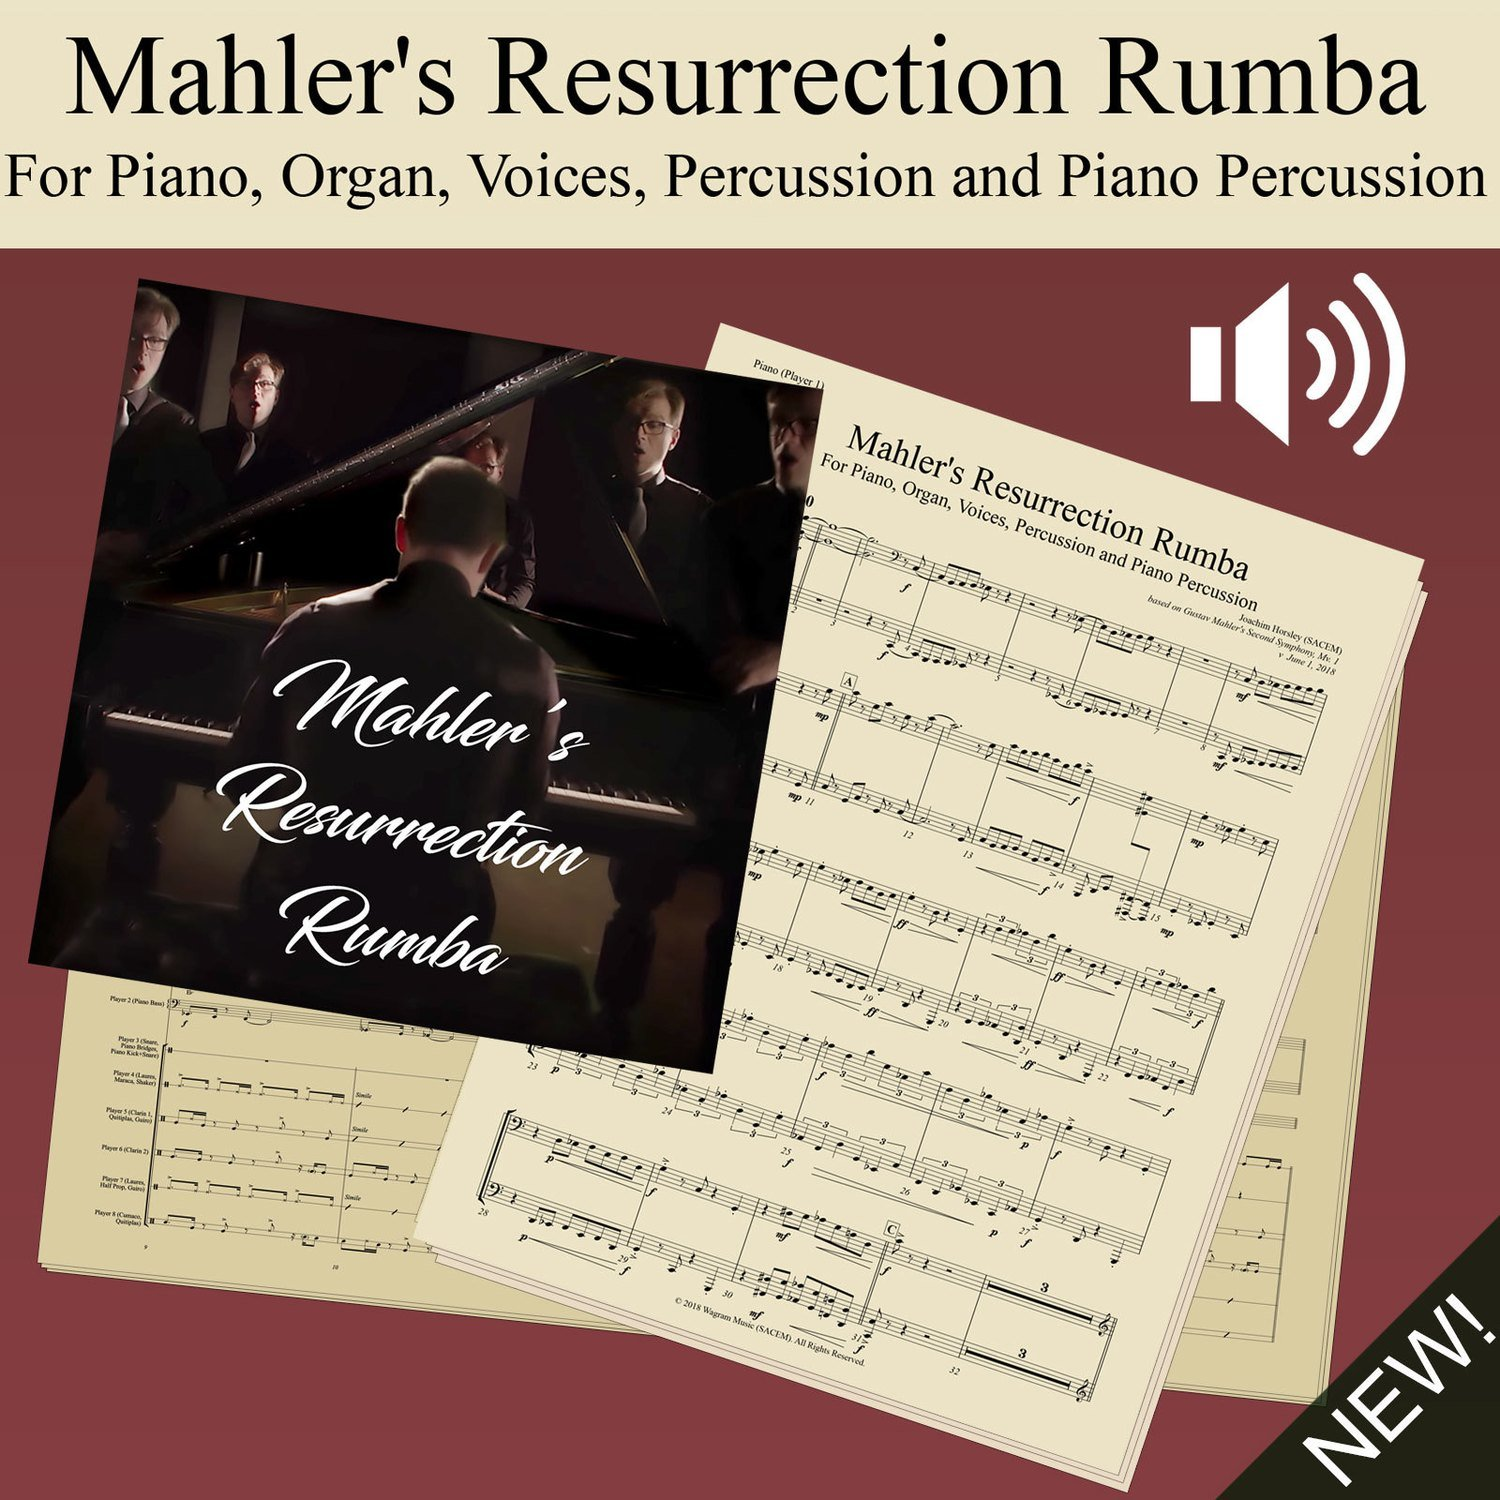 Mahler's Resurrection Rumba (Score and Parts)